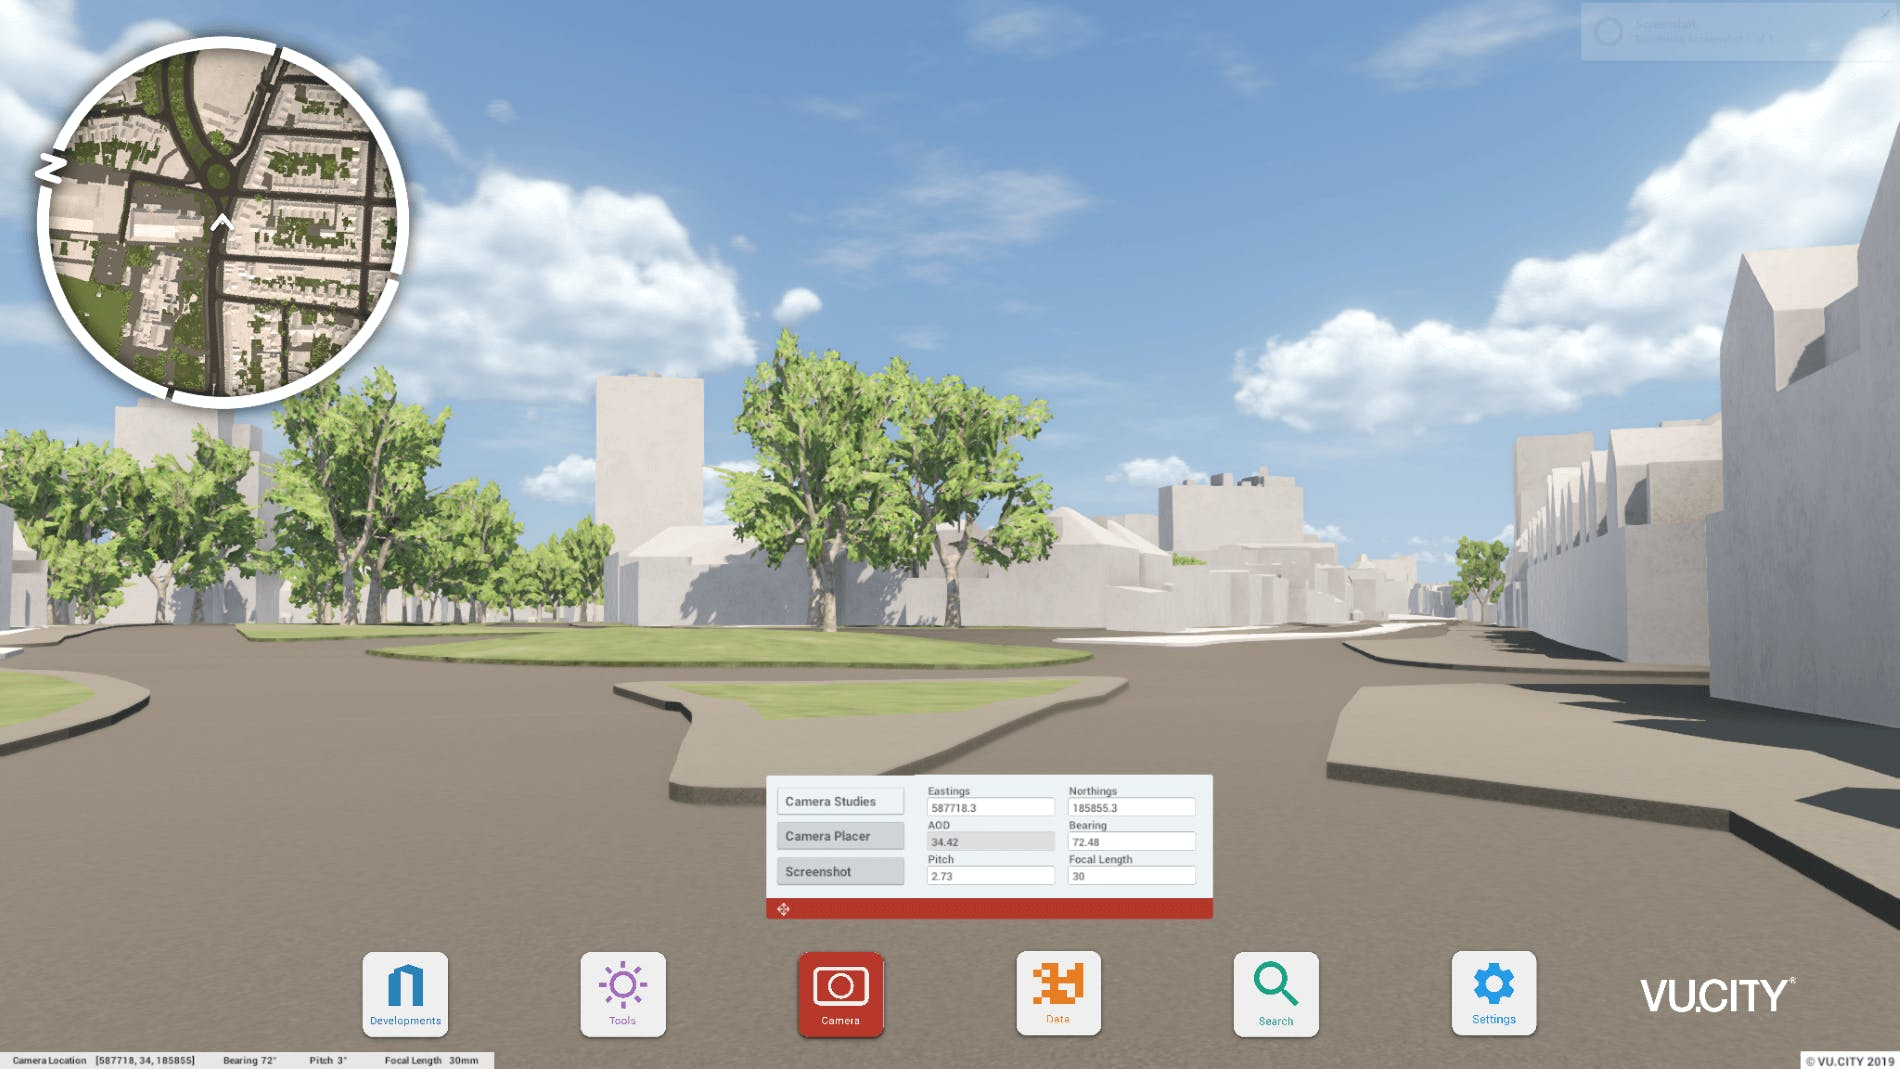 View the model by walking around at street level